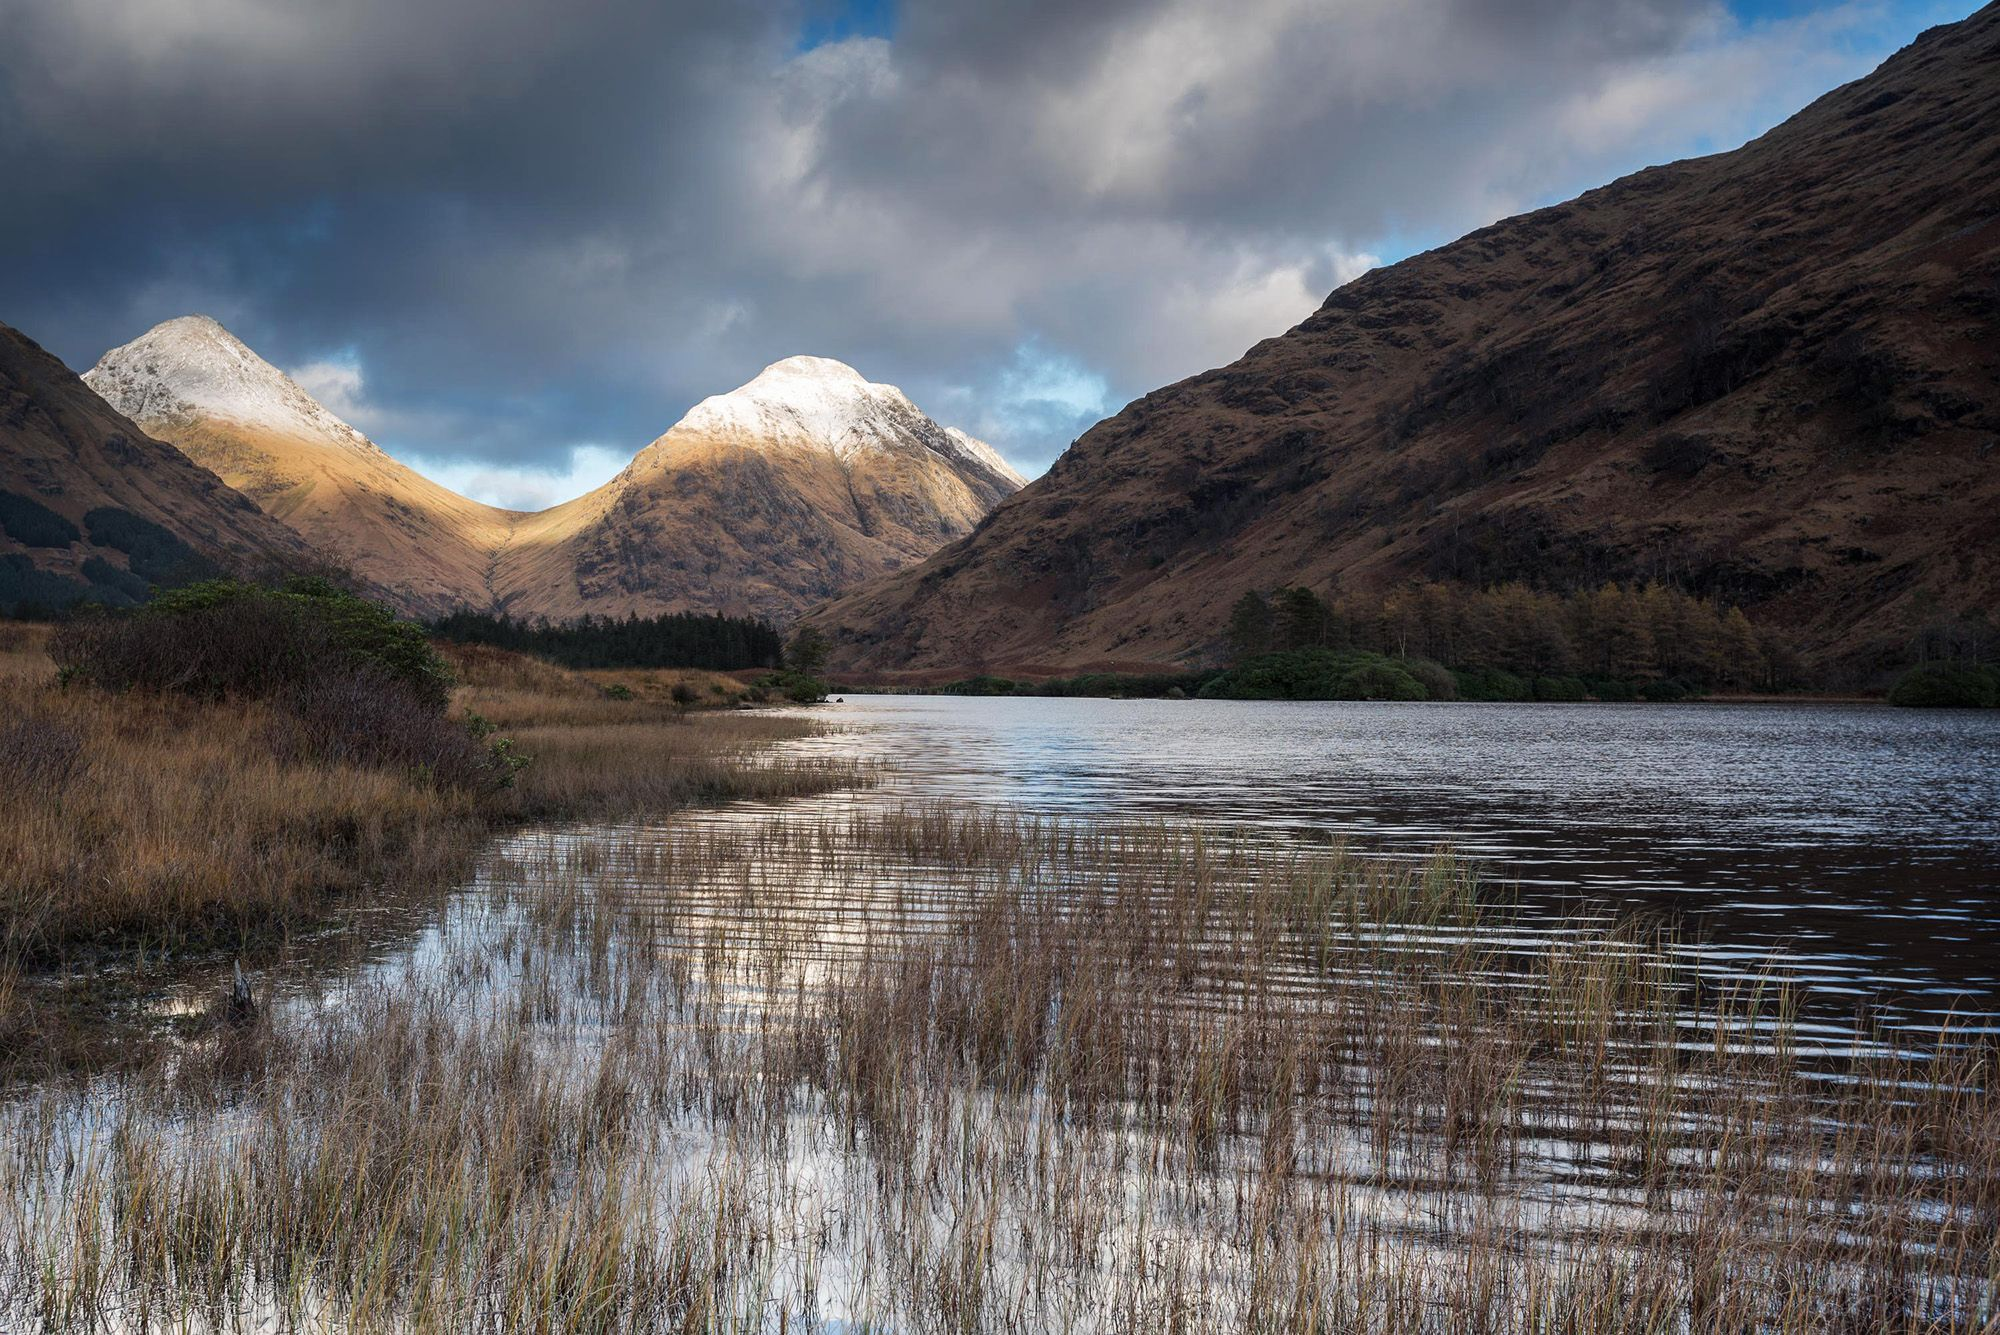 Why do photographers love Glencoe?